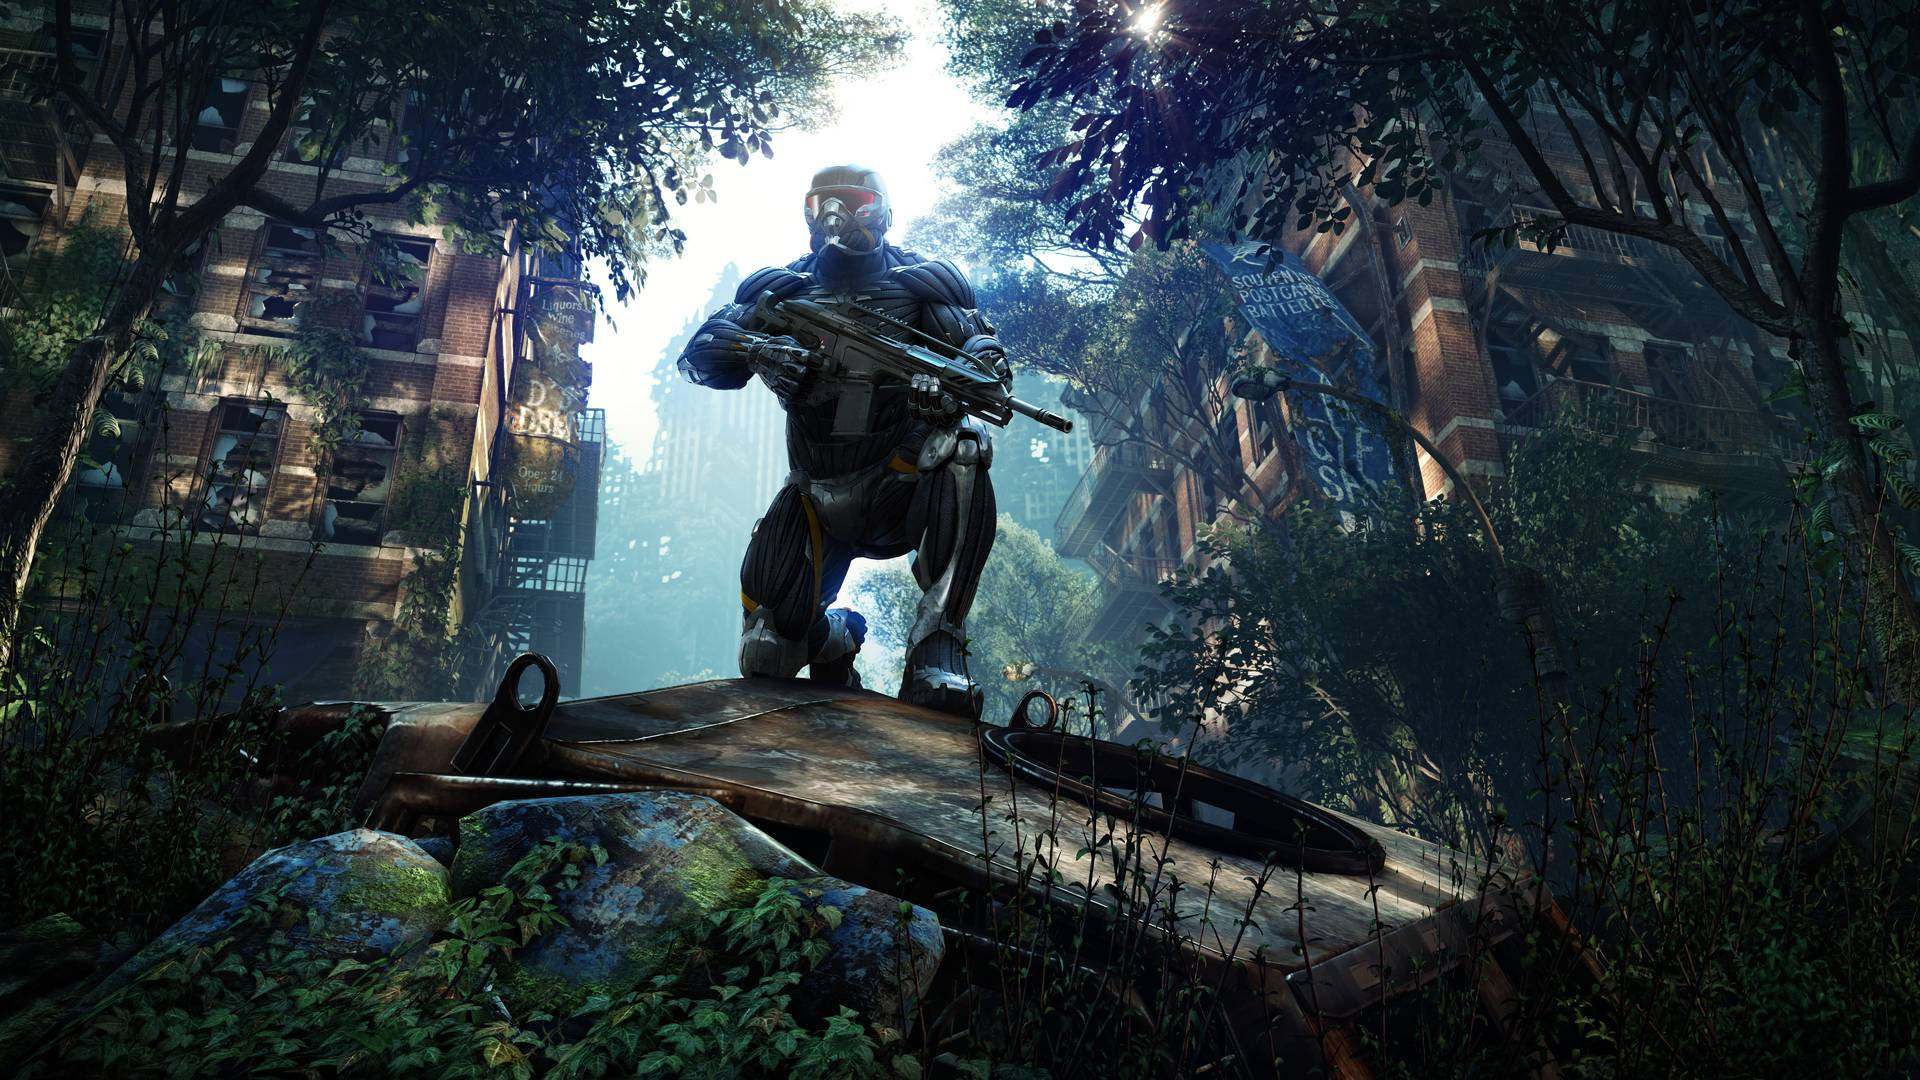 Crysis 3 Wallpapers Pack download